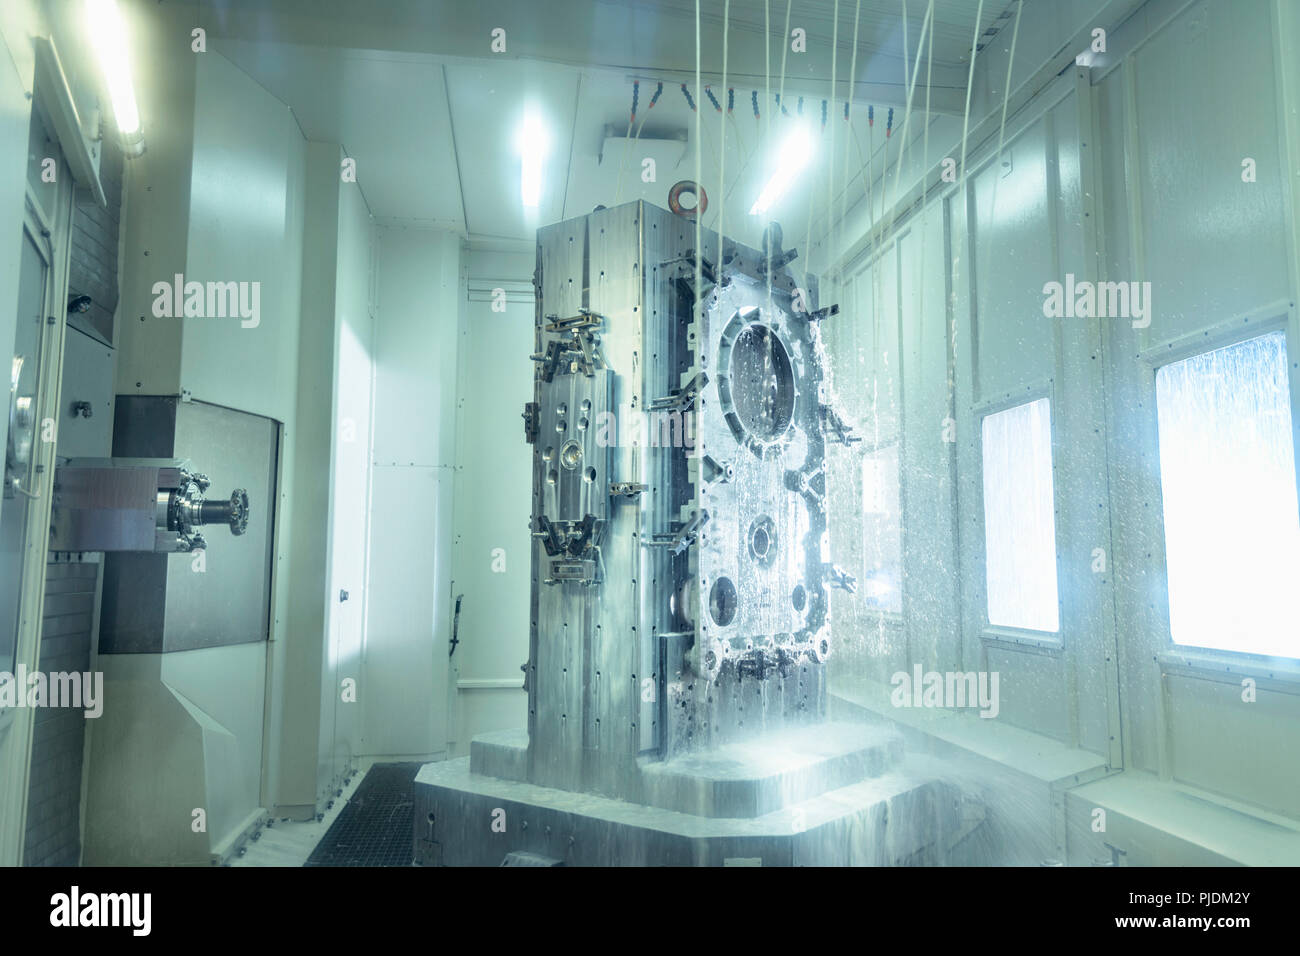 View of parts inside CNC machine in gearbox factory - Stock Image